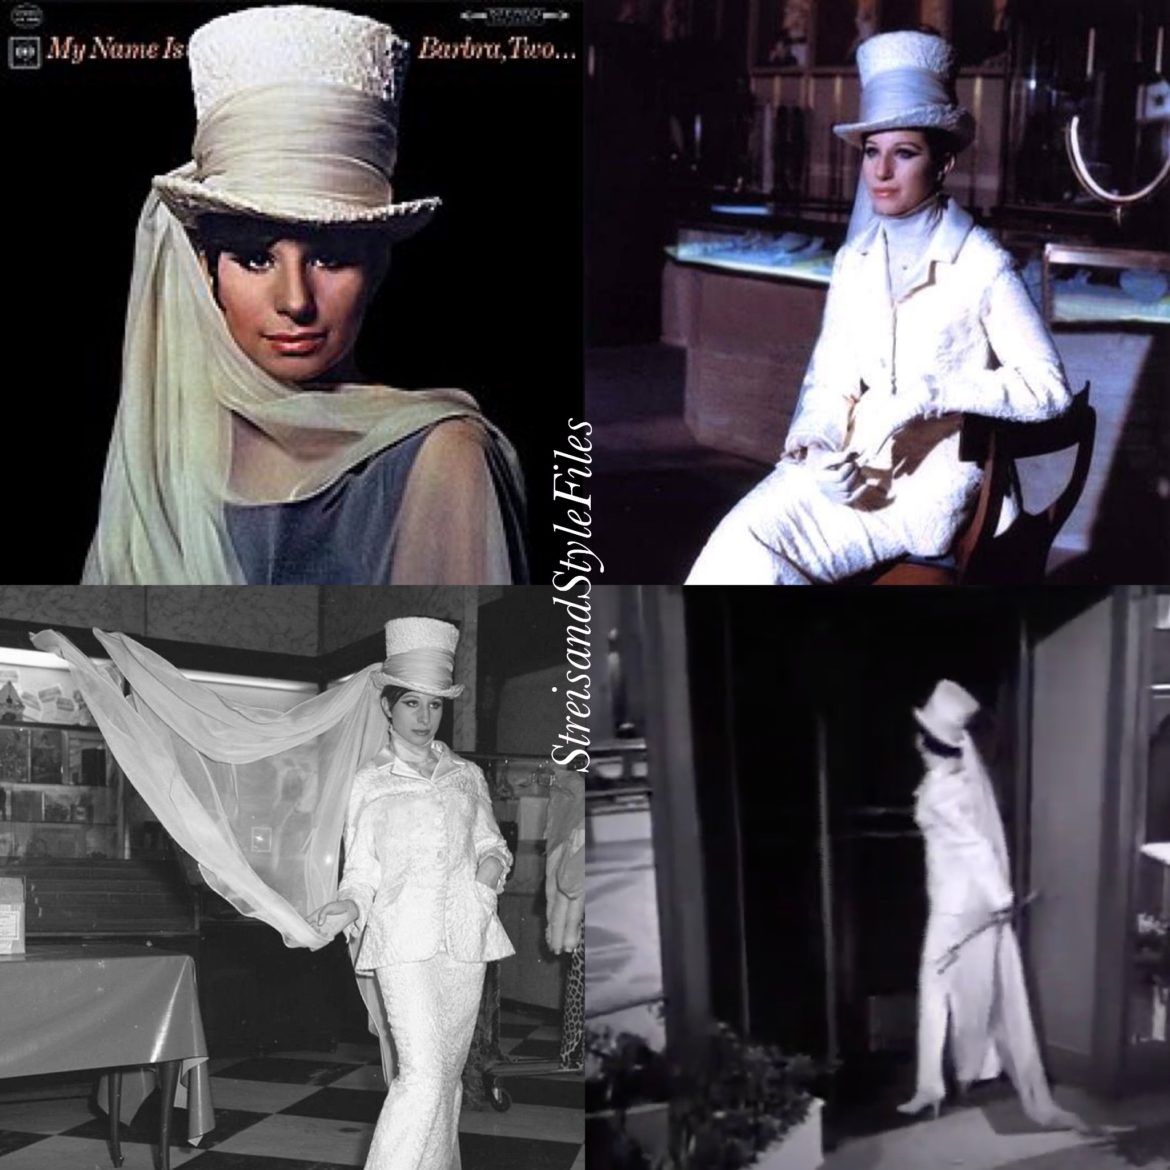 """My Name is Barbra, Two"" album cover and ""My Name is Barbra"" TV special in a Halston hat"